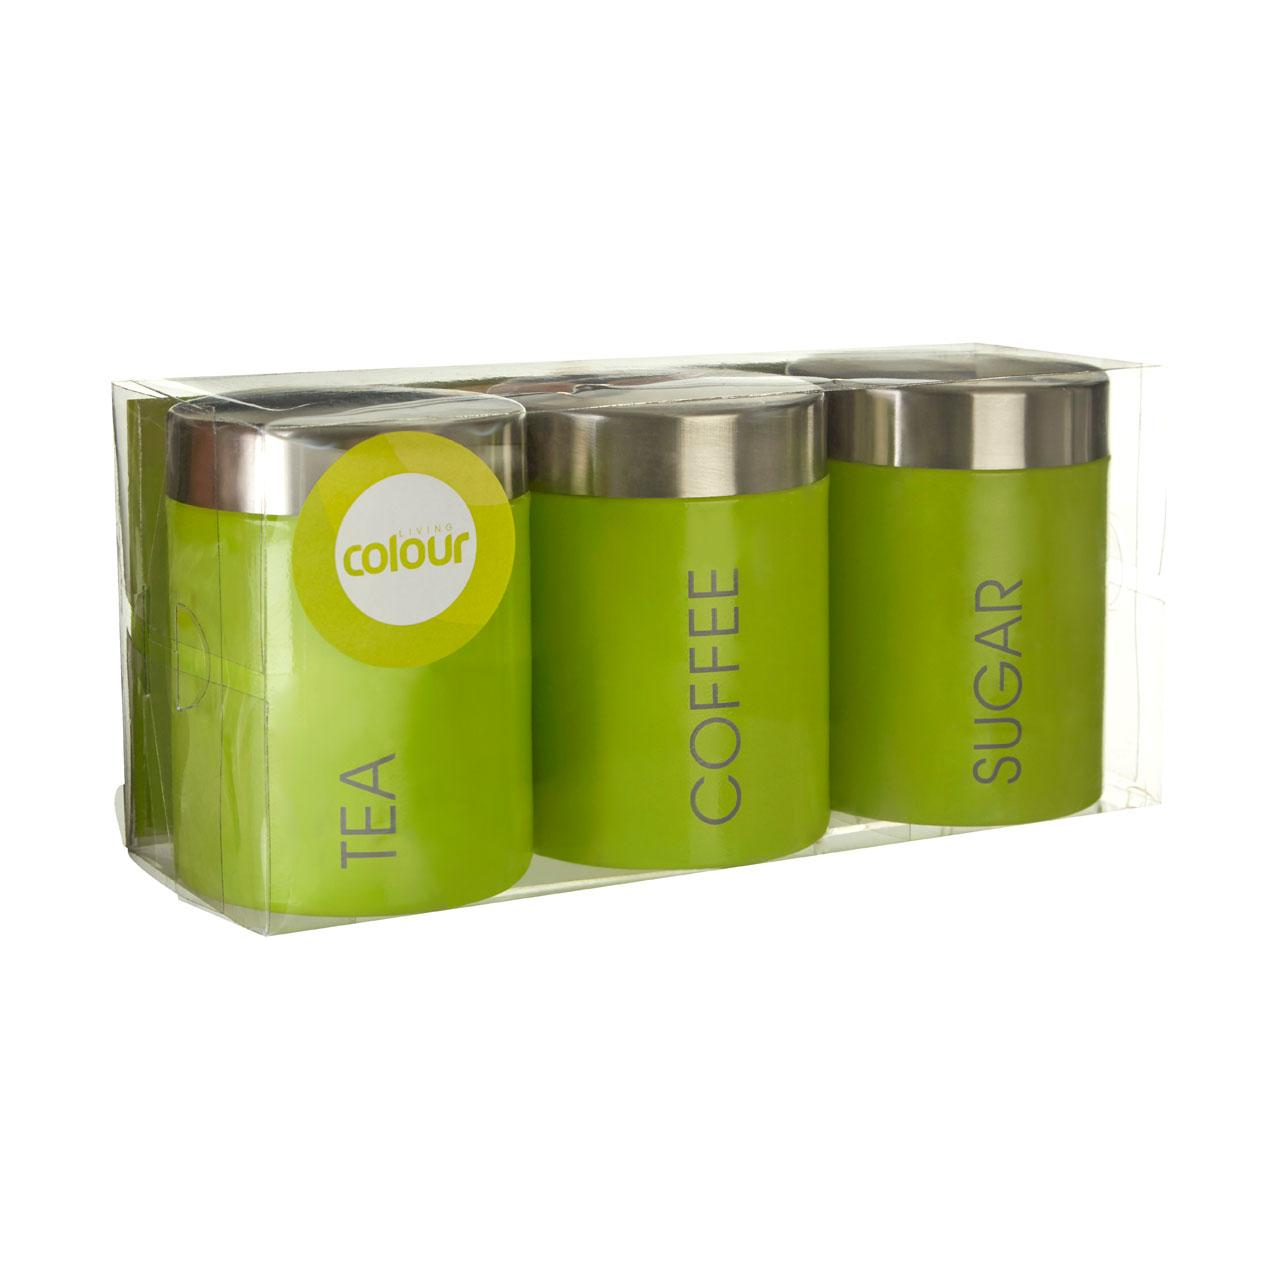 Stainless Steel Kitchen Canisters Premier Housewares Liberty Tea Coffee And Sugar Canisters